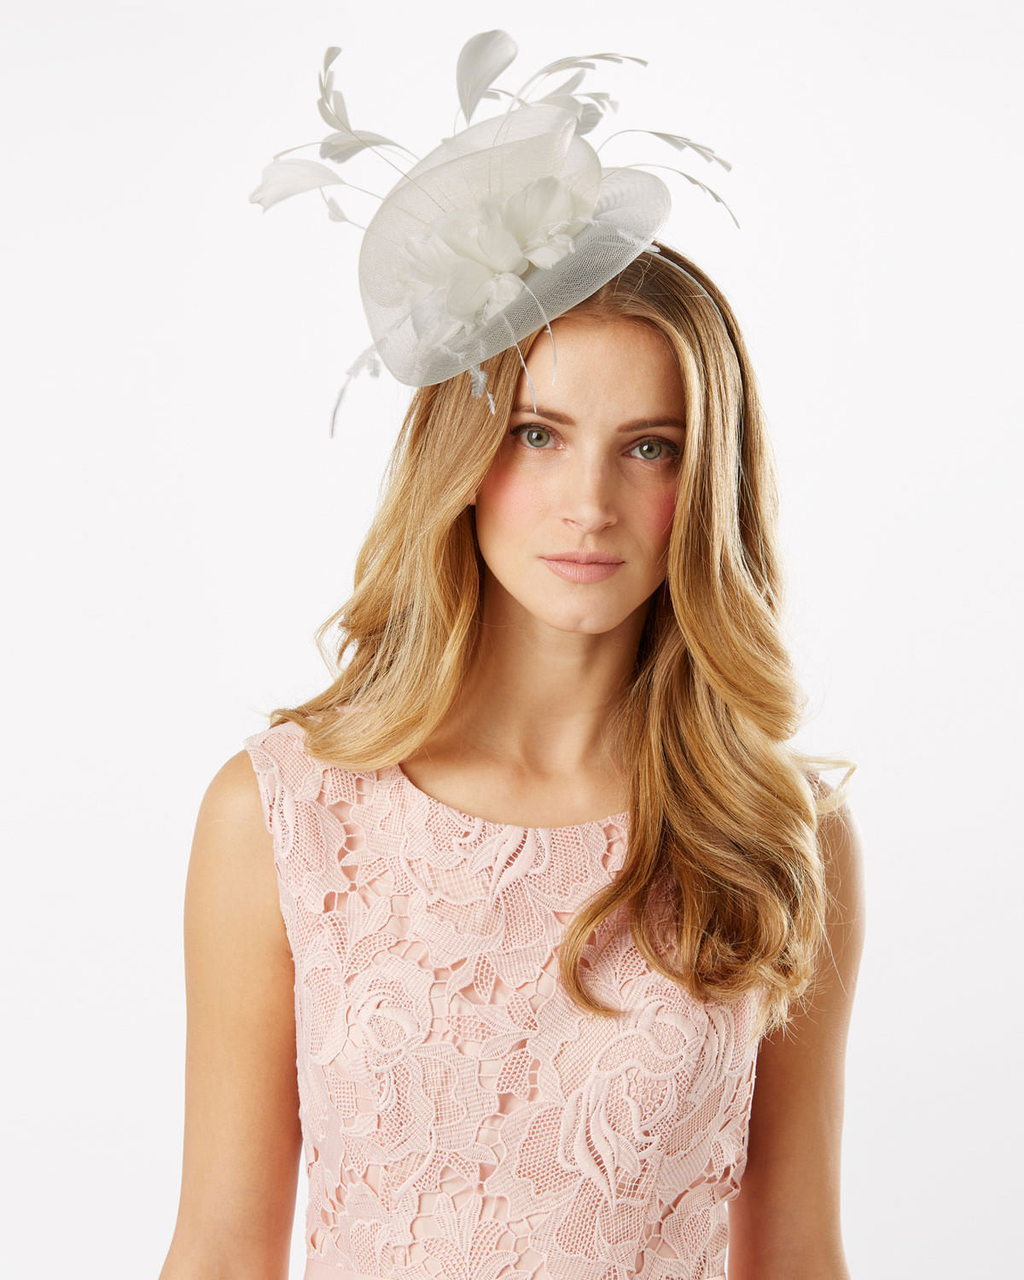 Rose Fascinator - predominant colour: ivory/cream; occasions: occasion; type of pattern: standard; embellishment: feathers; style: fascinator; size: large; material: sinamay; pattern: plain; season: s/s 2016; wardrobe: event